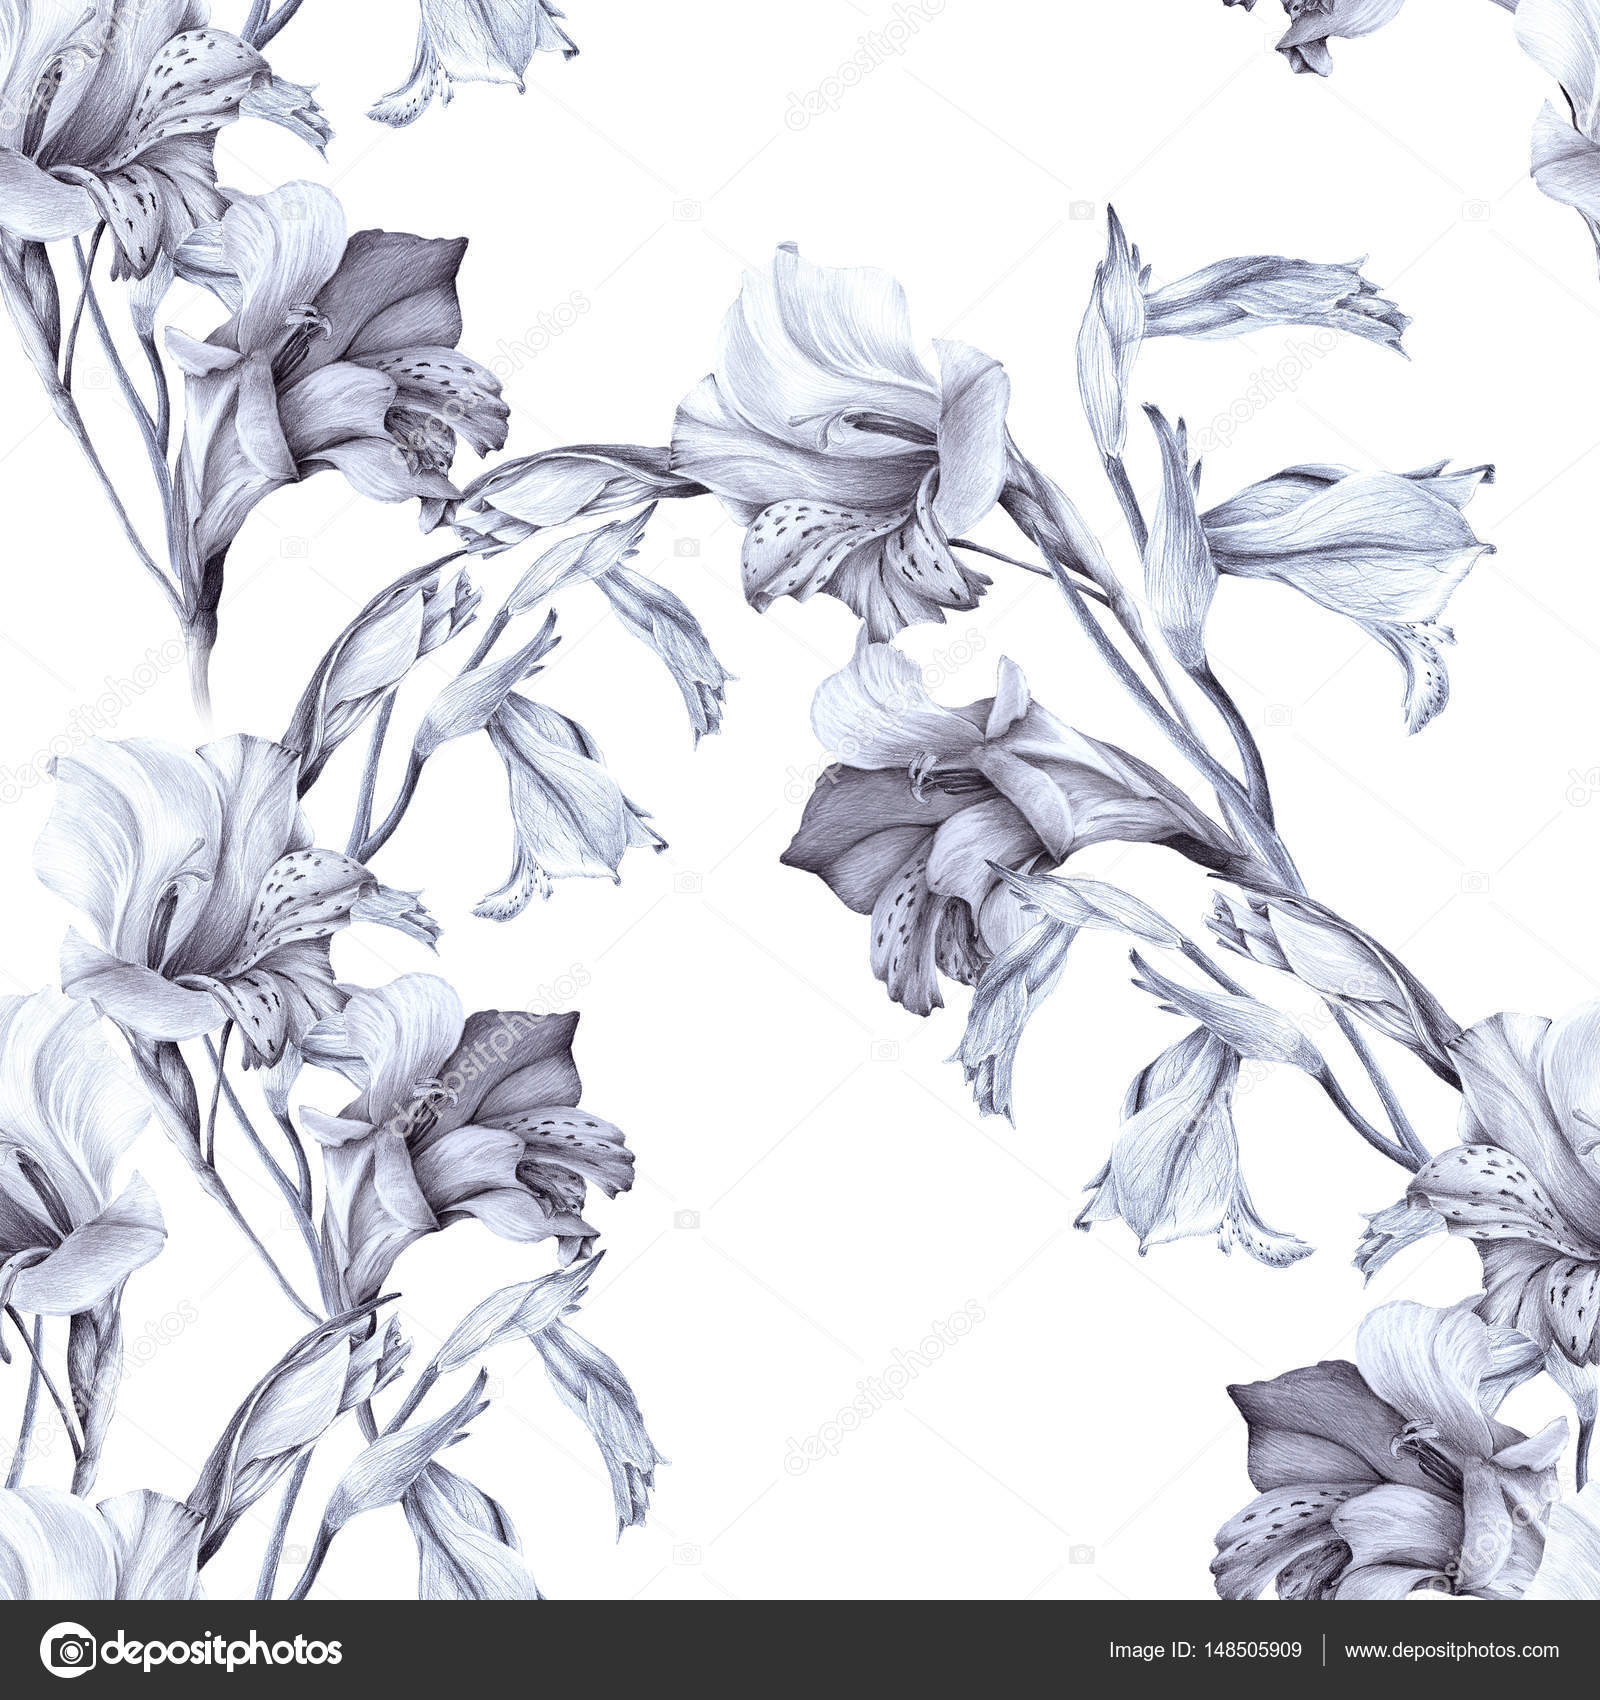 Gladiolus Abstract Wallpaper With Floral Motifs Seamless Pattern